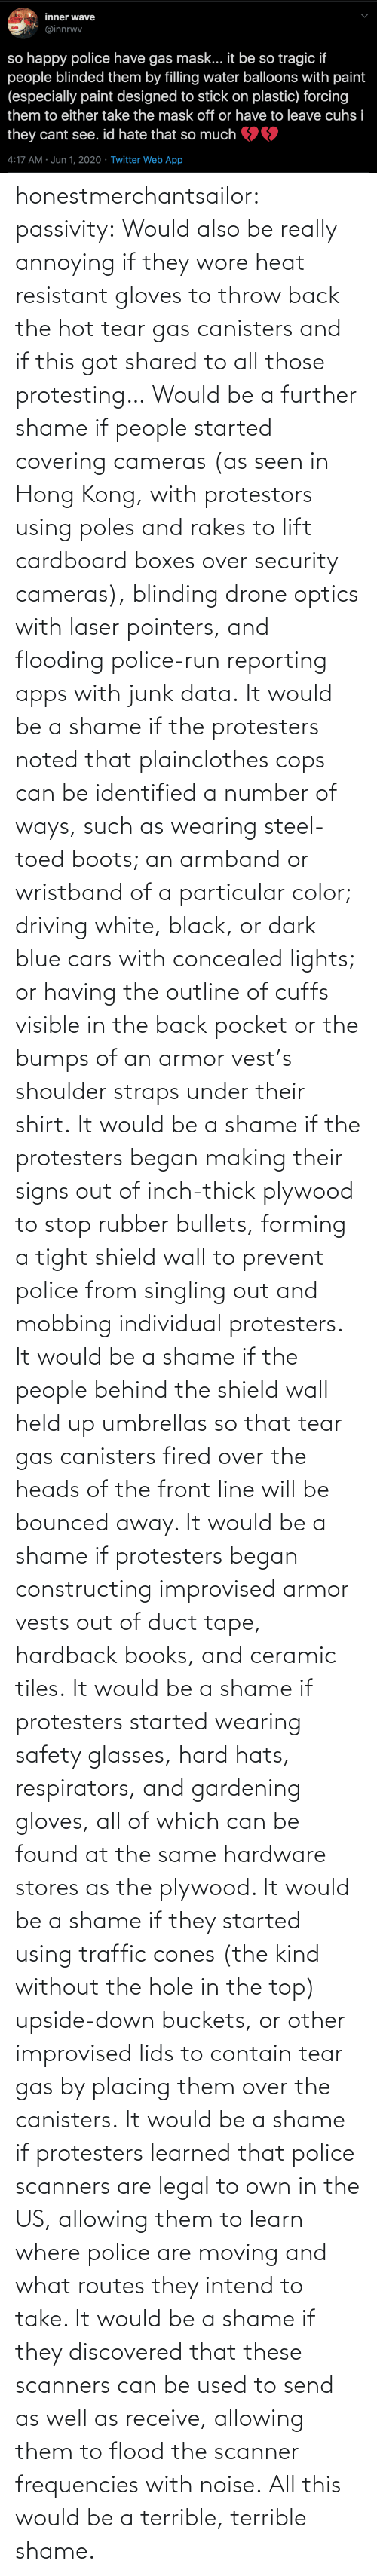 Drone: honestmerchantsailor: passivity: Would also be really annoying if they wore heat resistant gloves to throw back the hot tear gas canisters and if this got shared to all those protesting… Would be a further shame if people started covering cameras (as seen in Hong Kong, with protestors using poles and rakes to lift cardboard boxes over security cameras), blinding drone optics with laser pointers, and flooding police-run reporting apps with junk data. It would be a shame if the protesters noted that plainclothes cops can be identified a number of ways, such as wearing steel-toed boots; an armband or wristband of a particular color; driving white, black, or dark blue cars with concealed lights; or having the outline of cuffs visible in the back pocket or the bumps of an armor vest's shoulder straps under their shirt. It would be a shame if the protesters began making their signs out of inch-thick plywood to stop rubber bullets, forming a tight shield wall to prevent police from singling out and mobbing individual protesters. It would be a shame if the people behind the shield wall held up umbrellas so that tear gas canisters fired over the heads of the front line will be bounced away. It would be a shame if protesters began constructing improvised armor vests out of duct tape, hardback books, and ceramic tiles. It would be a shame if protesters started wearing safety glasses, hard hats, respirators, and gardening gloves, all of which can be found at the same hardware stores as the plywood. It would be a shame if they started using traffic cones (the kind without the hole in the top) upside-down buckets, or other improvised lids to contain tear gas by placing them over the canisters. It would be a shame if protesters learned that police scanners are legal to own in the US, allowing them to learn where police are moving and what routes they intend to take. It would be a shame if they discovered that these scanners can be used to send as well as receive, allowing them to flood the scanner frequencies with noise. All this would be a terrible, terrible shame.